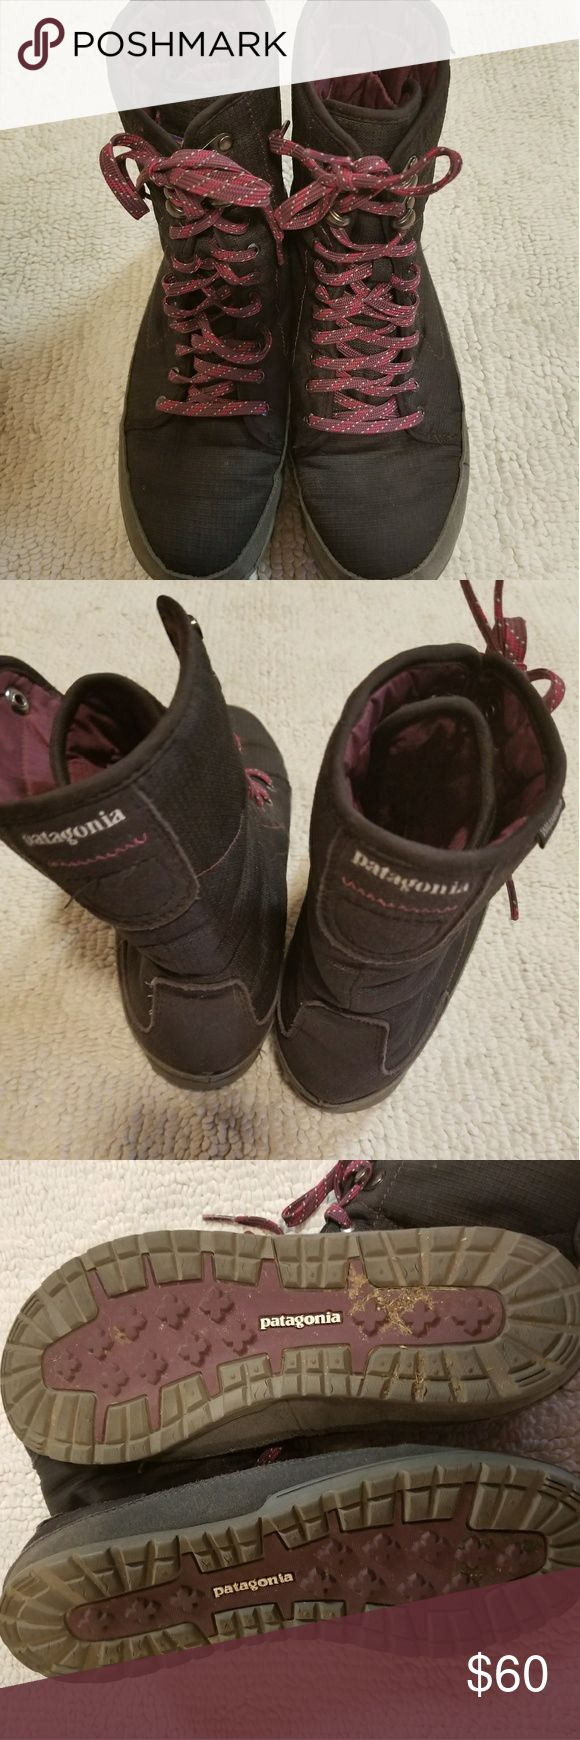 Patagonia Women Activist Puff High Waterproof SZ 8 Patagonia Women's Activist Puff High Waterproof Insulated size 8 Pre-owned, Patagonia Women's Activist Puff High Waterproof Insulated boots Size 8  Color- Black/Dark current  Waterproof Super lightweight 18 oz! Smoke-free home. $100+ on Amazon! Please see pictures for better description and don't hesitate to ask questions! Thanks for looking! Patagonia Shoes Winter & Rain Boots